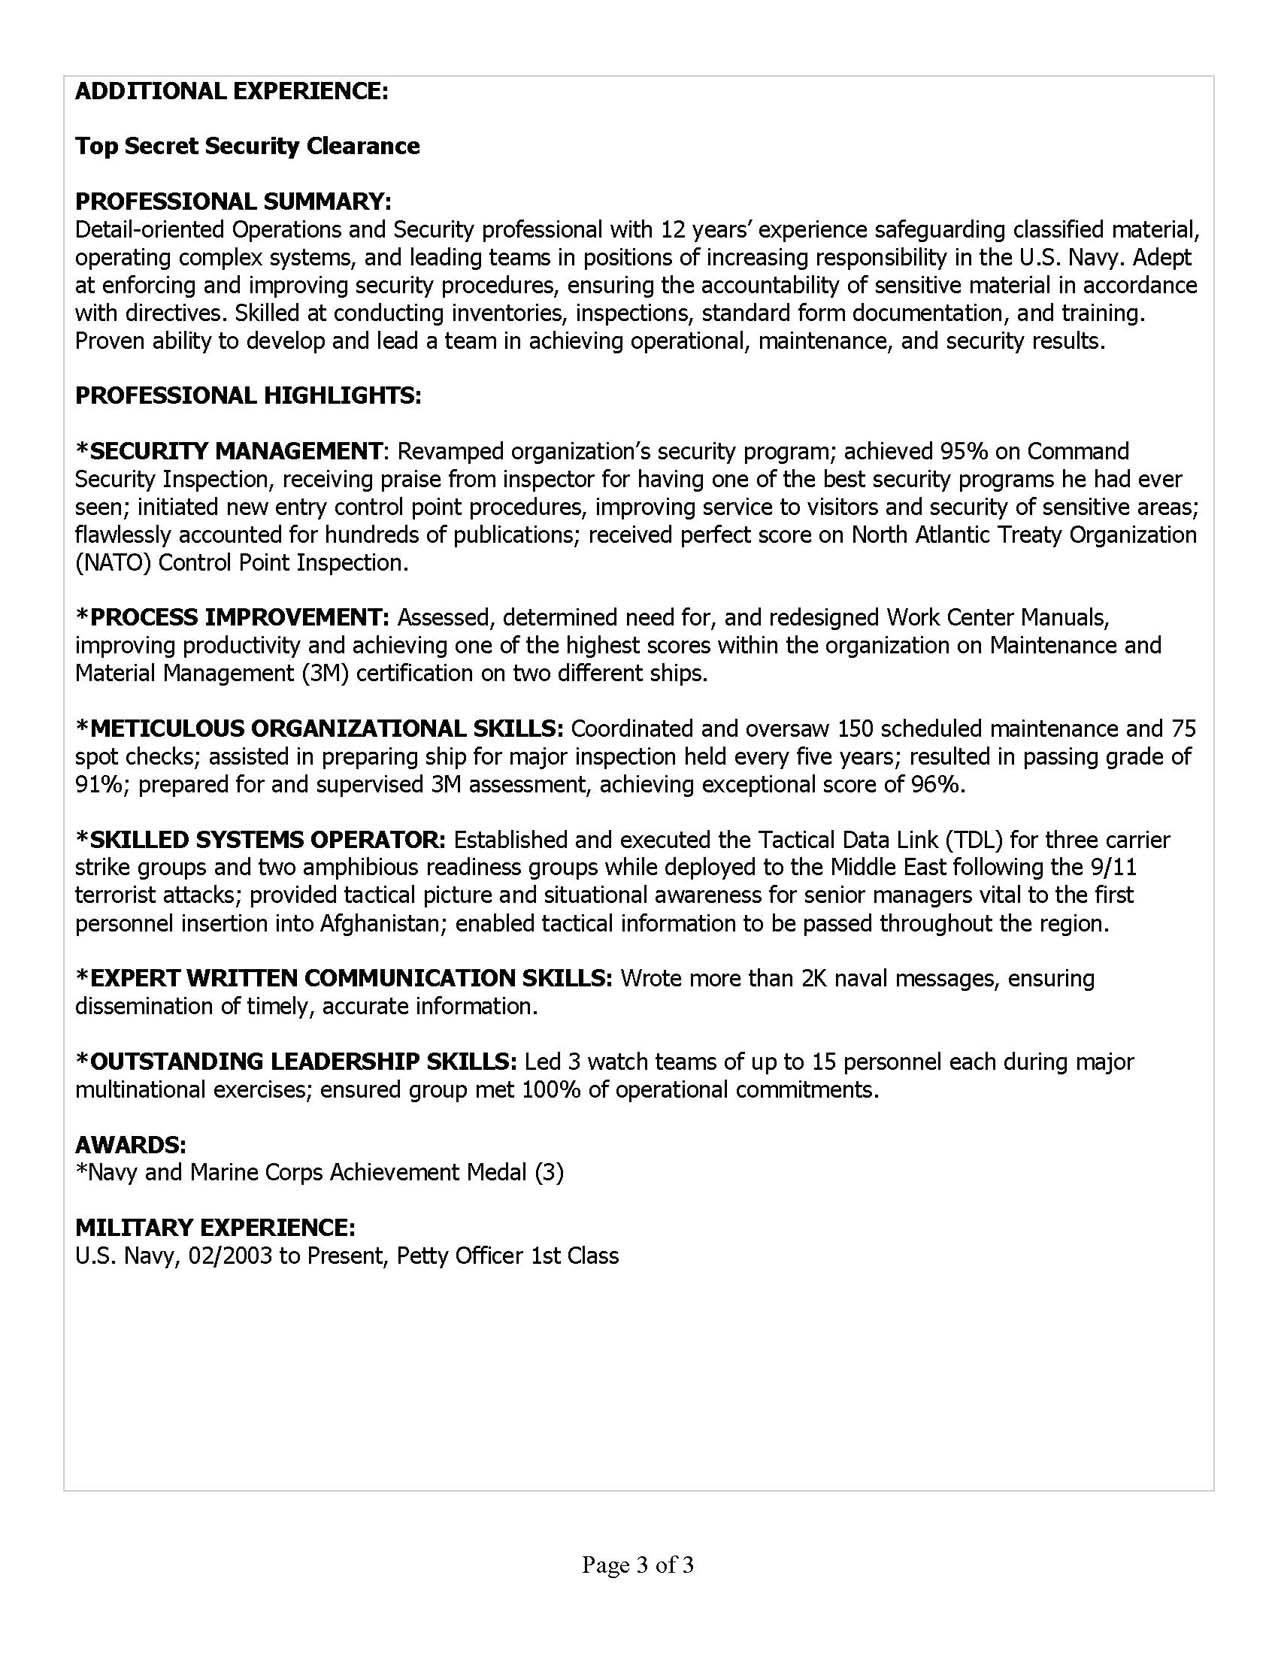 Military Resume Samples & Examples in 2014 | MRW | office ...